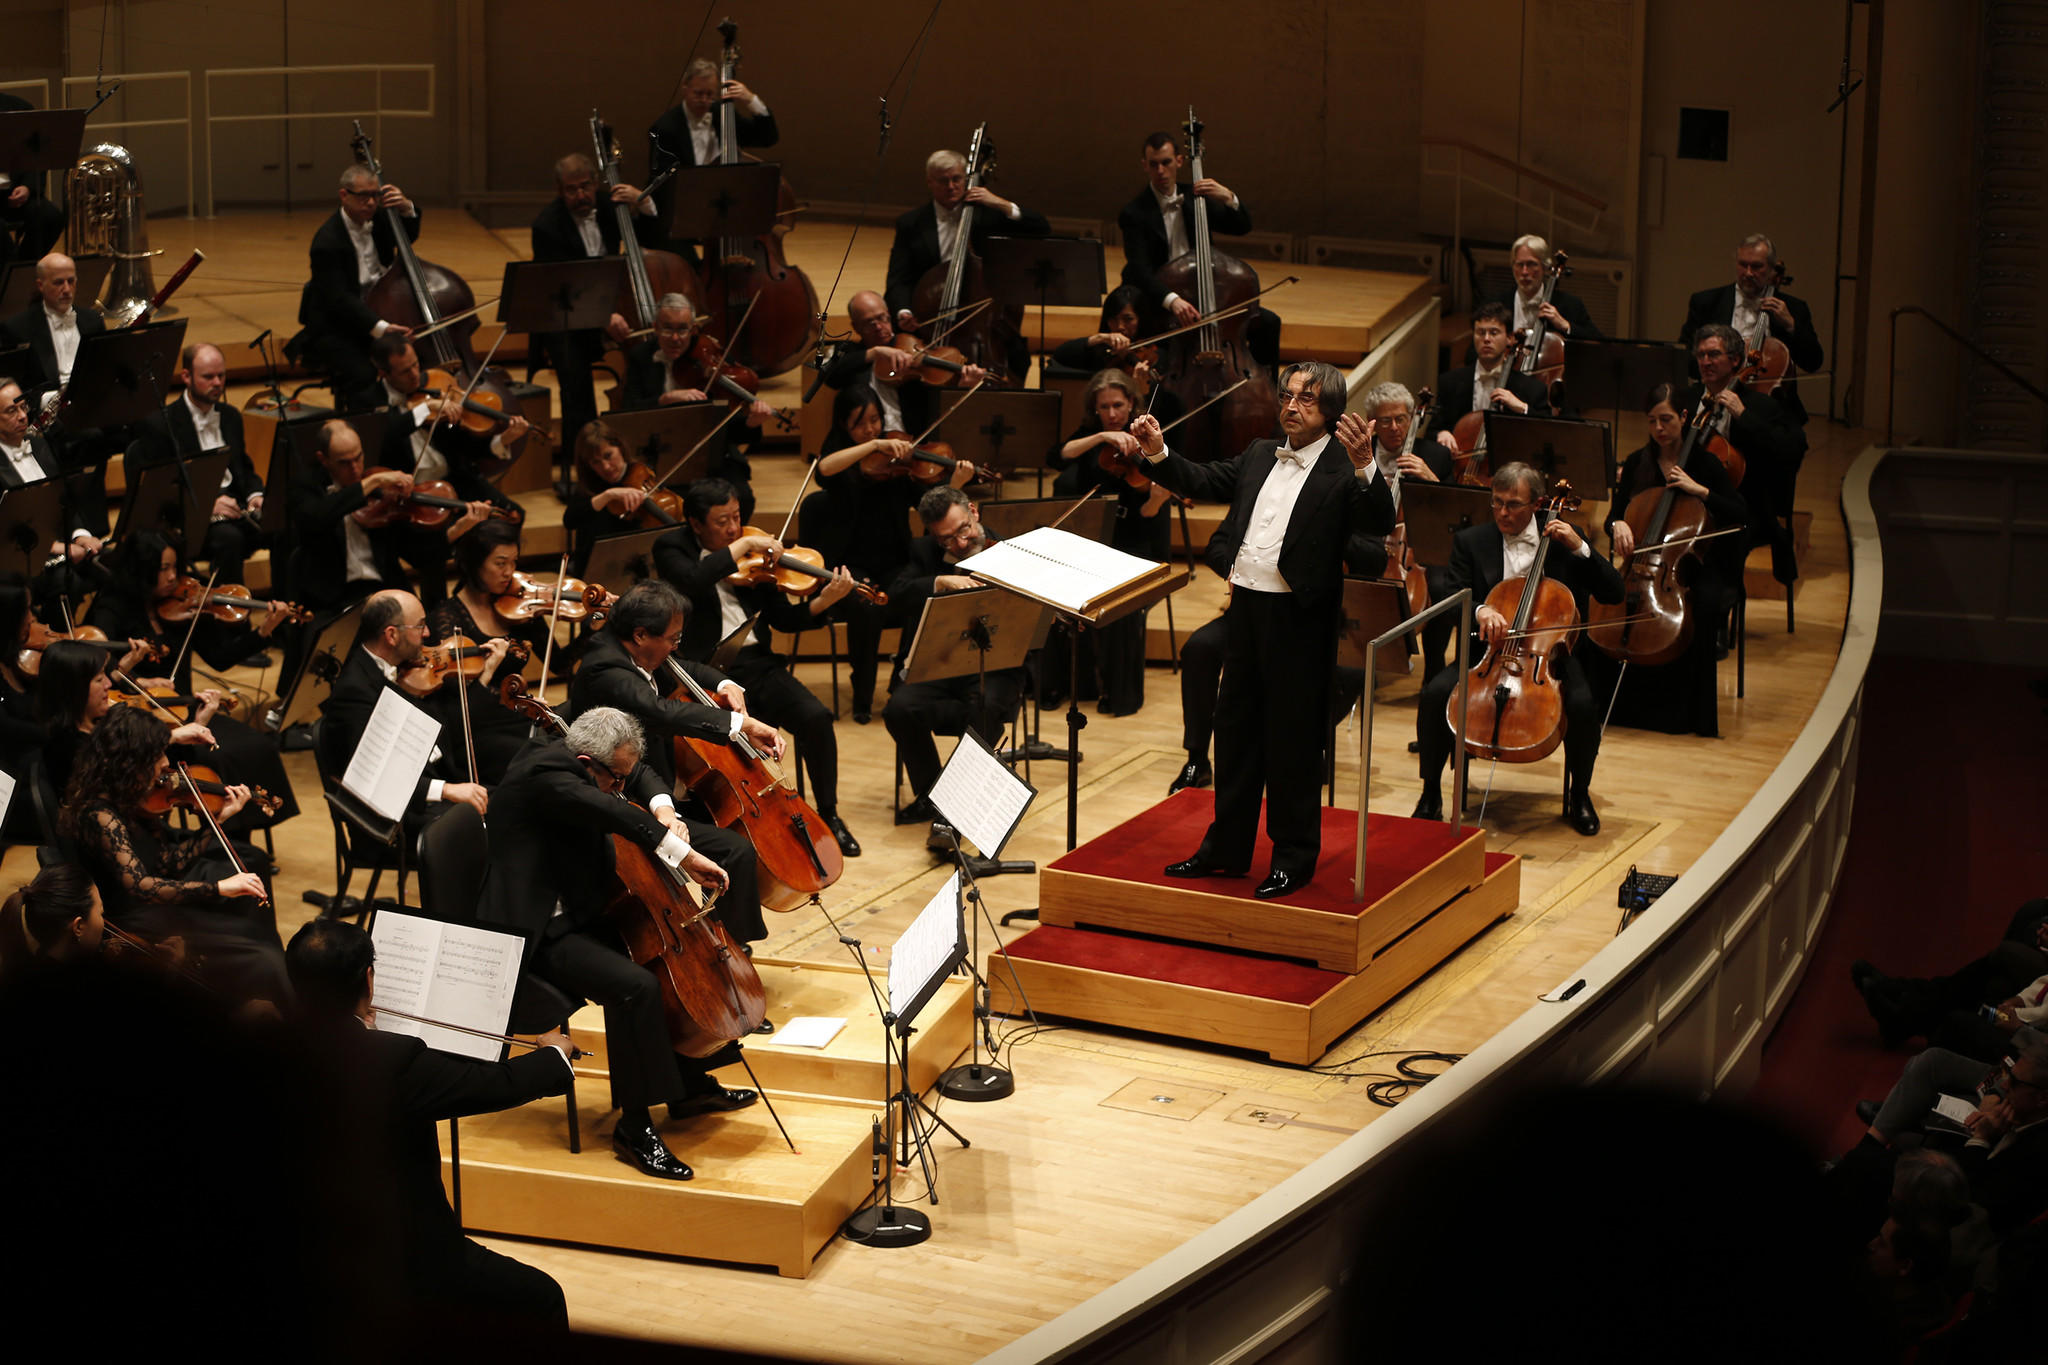 Riccardo Muti performs at his winter Chicago Symphony residency with cellists Yo-Yo Ma and Giovanni Sollima.